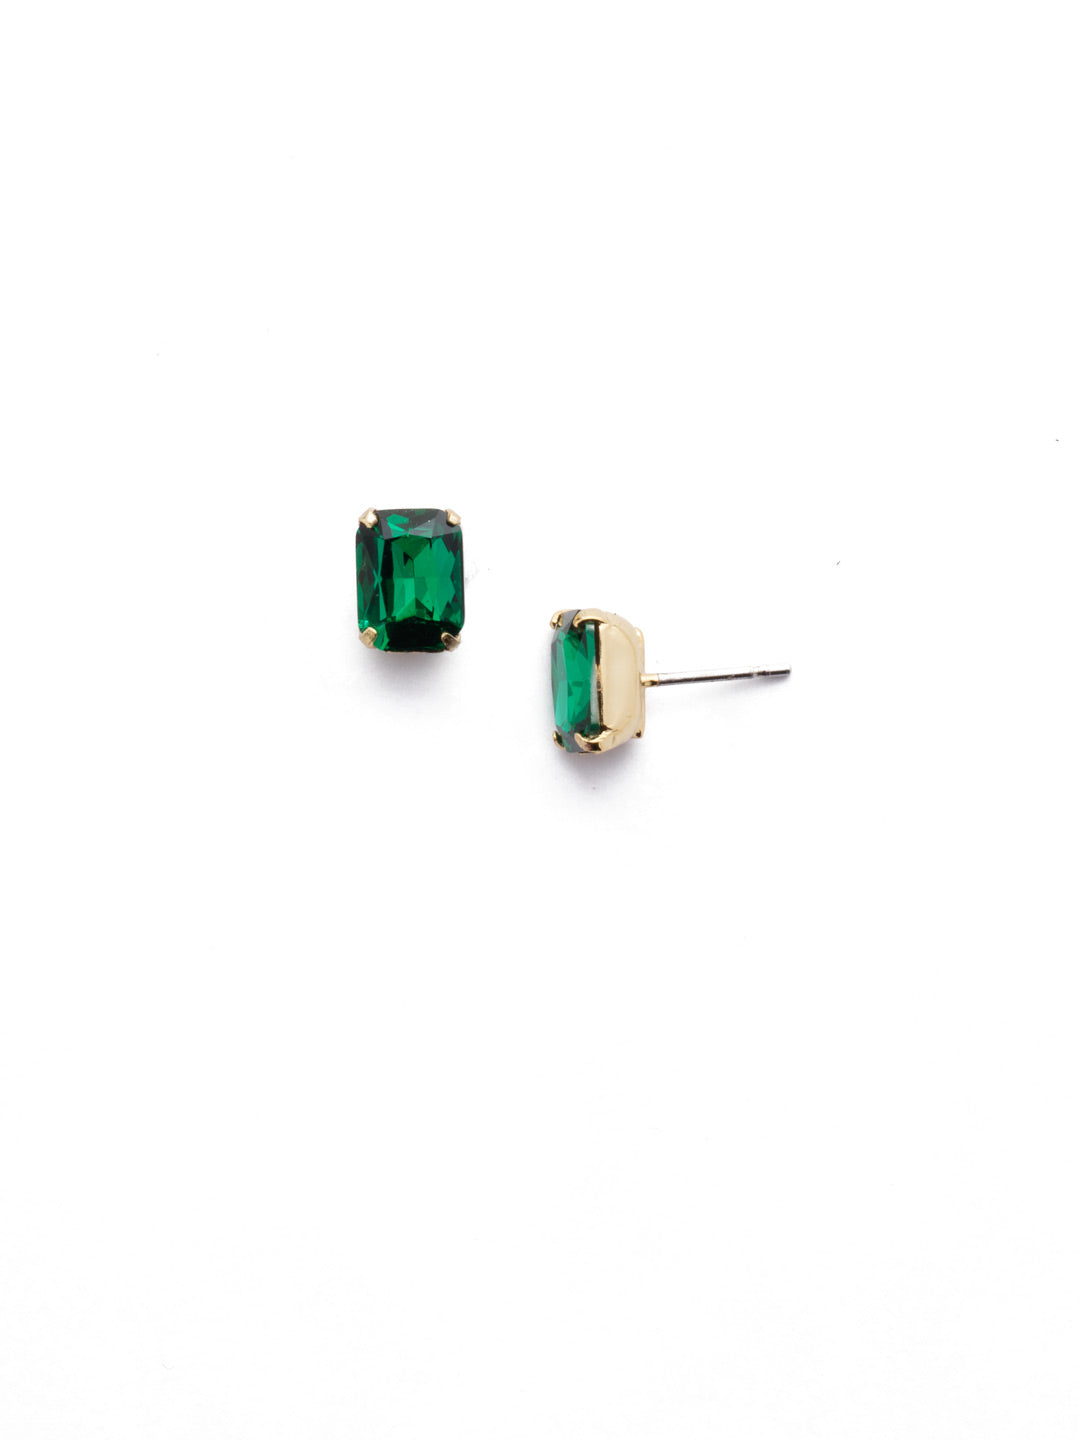 Mini Emerald Cut Stud Earrings - EBY42BGEME